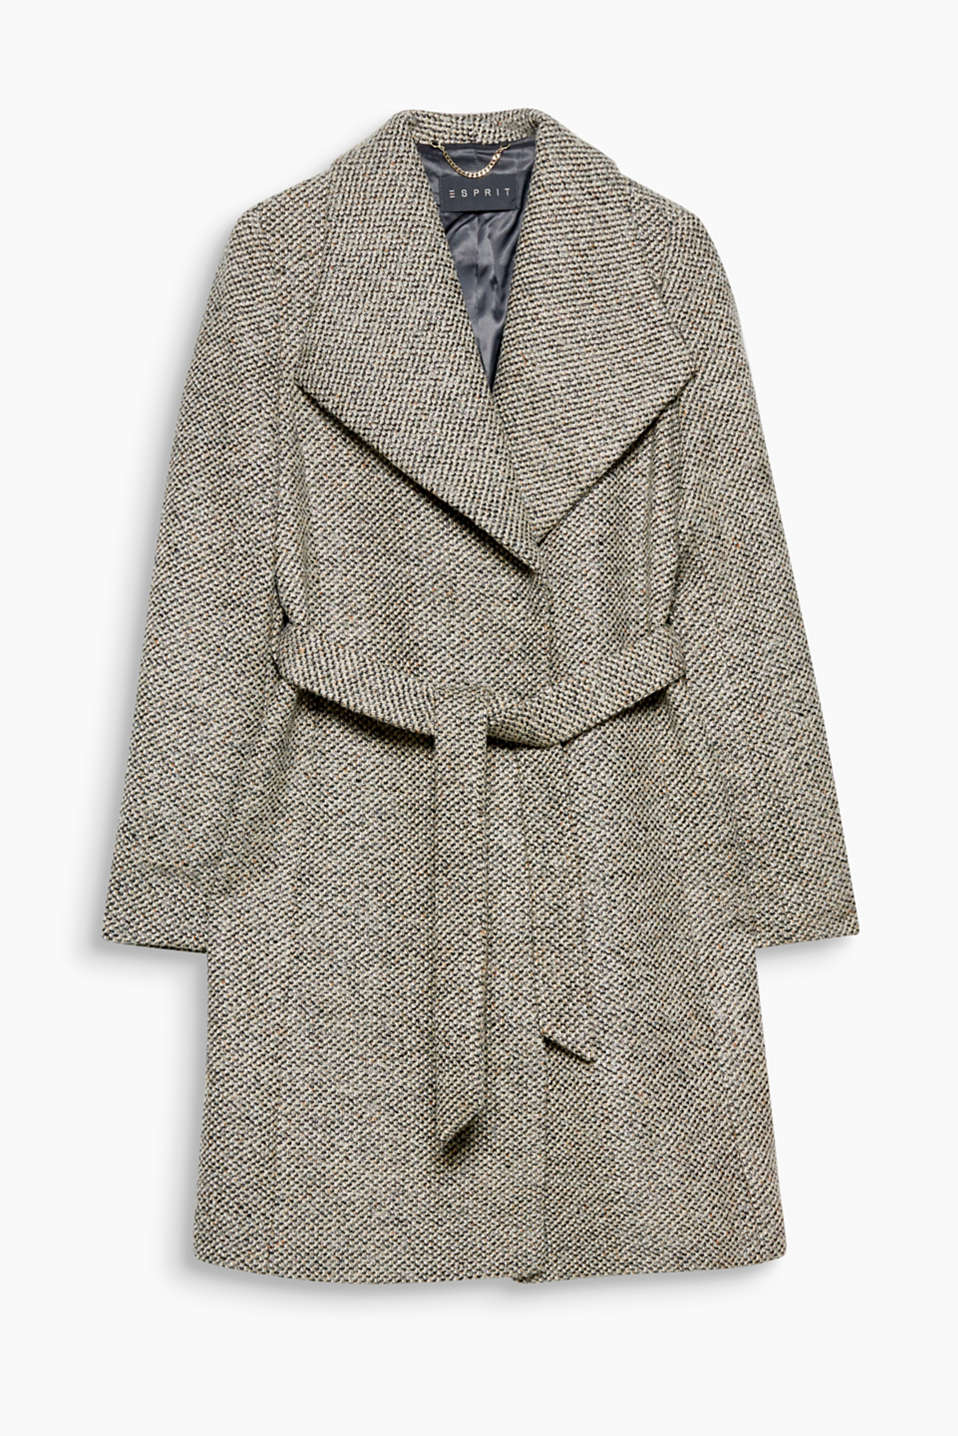 This coat is pure retro charm with its glittering, colourful tweed fabric and spade collar!